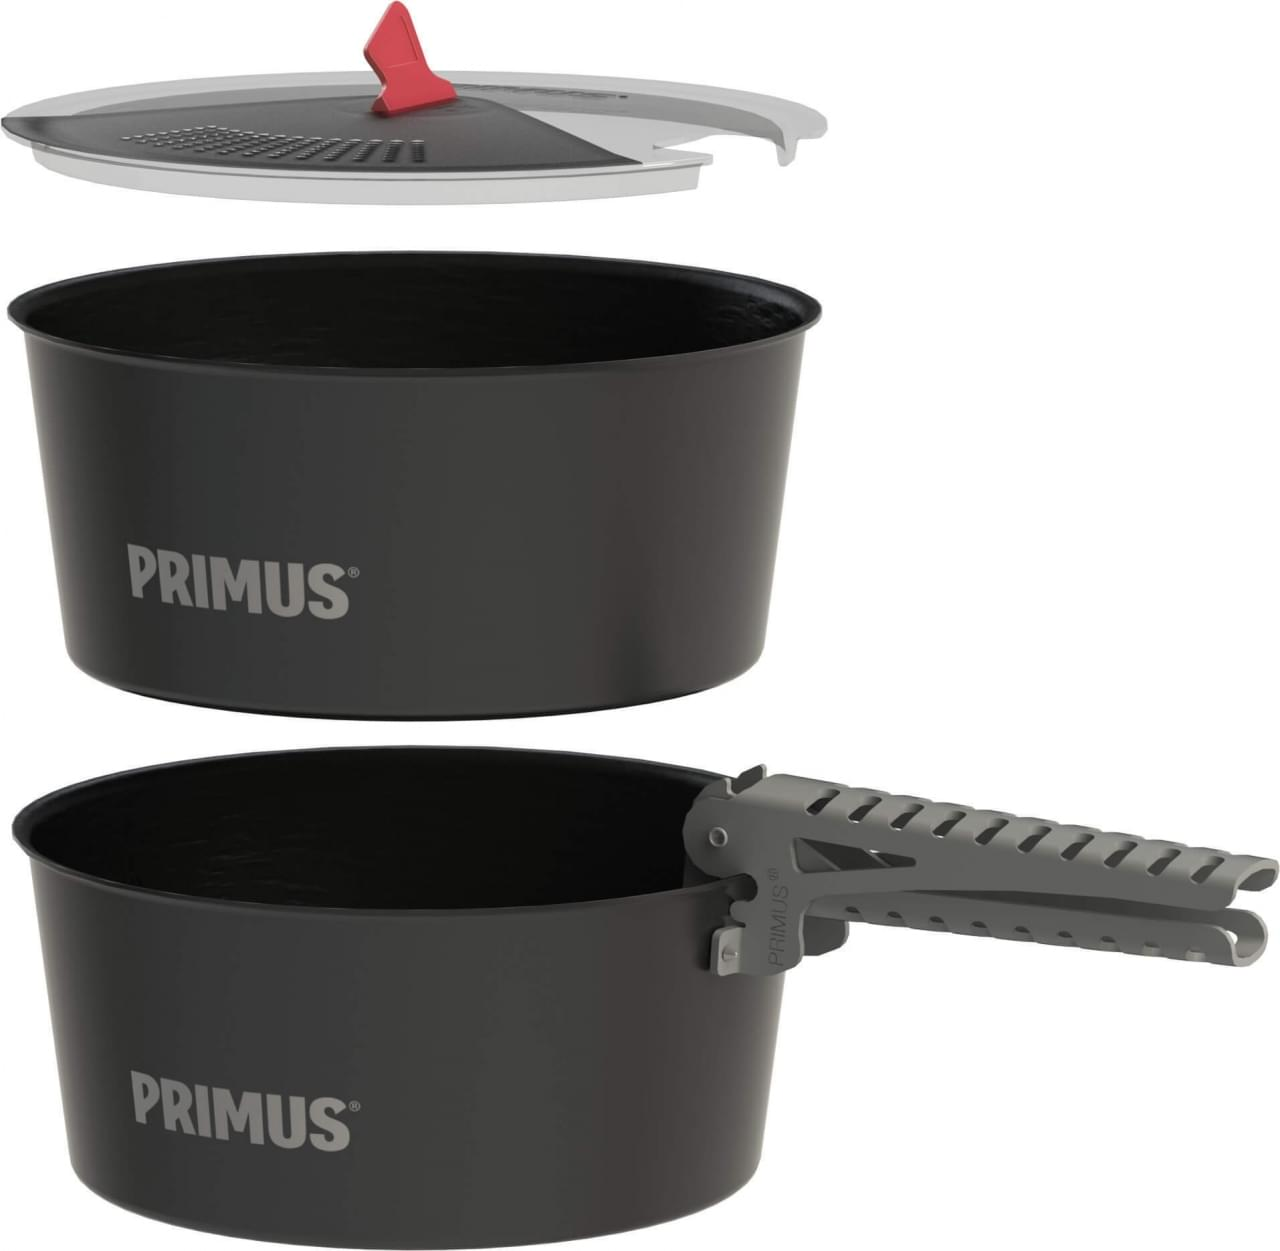 Primus LiTech Pot Set 1.3L Pannenset